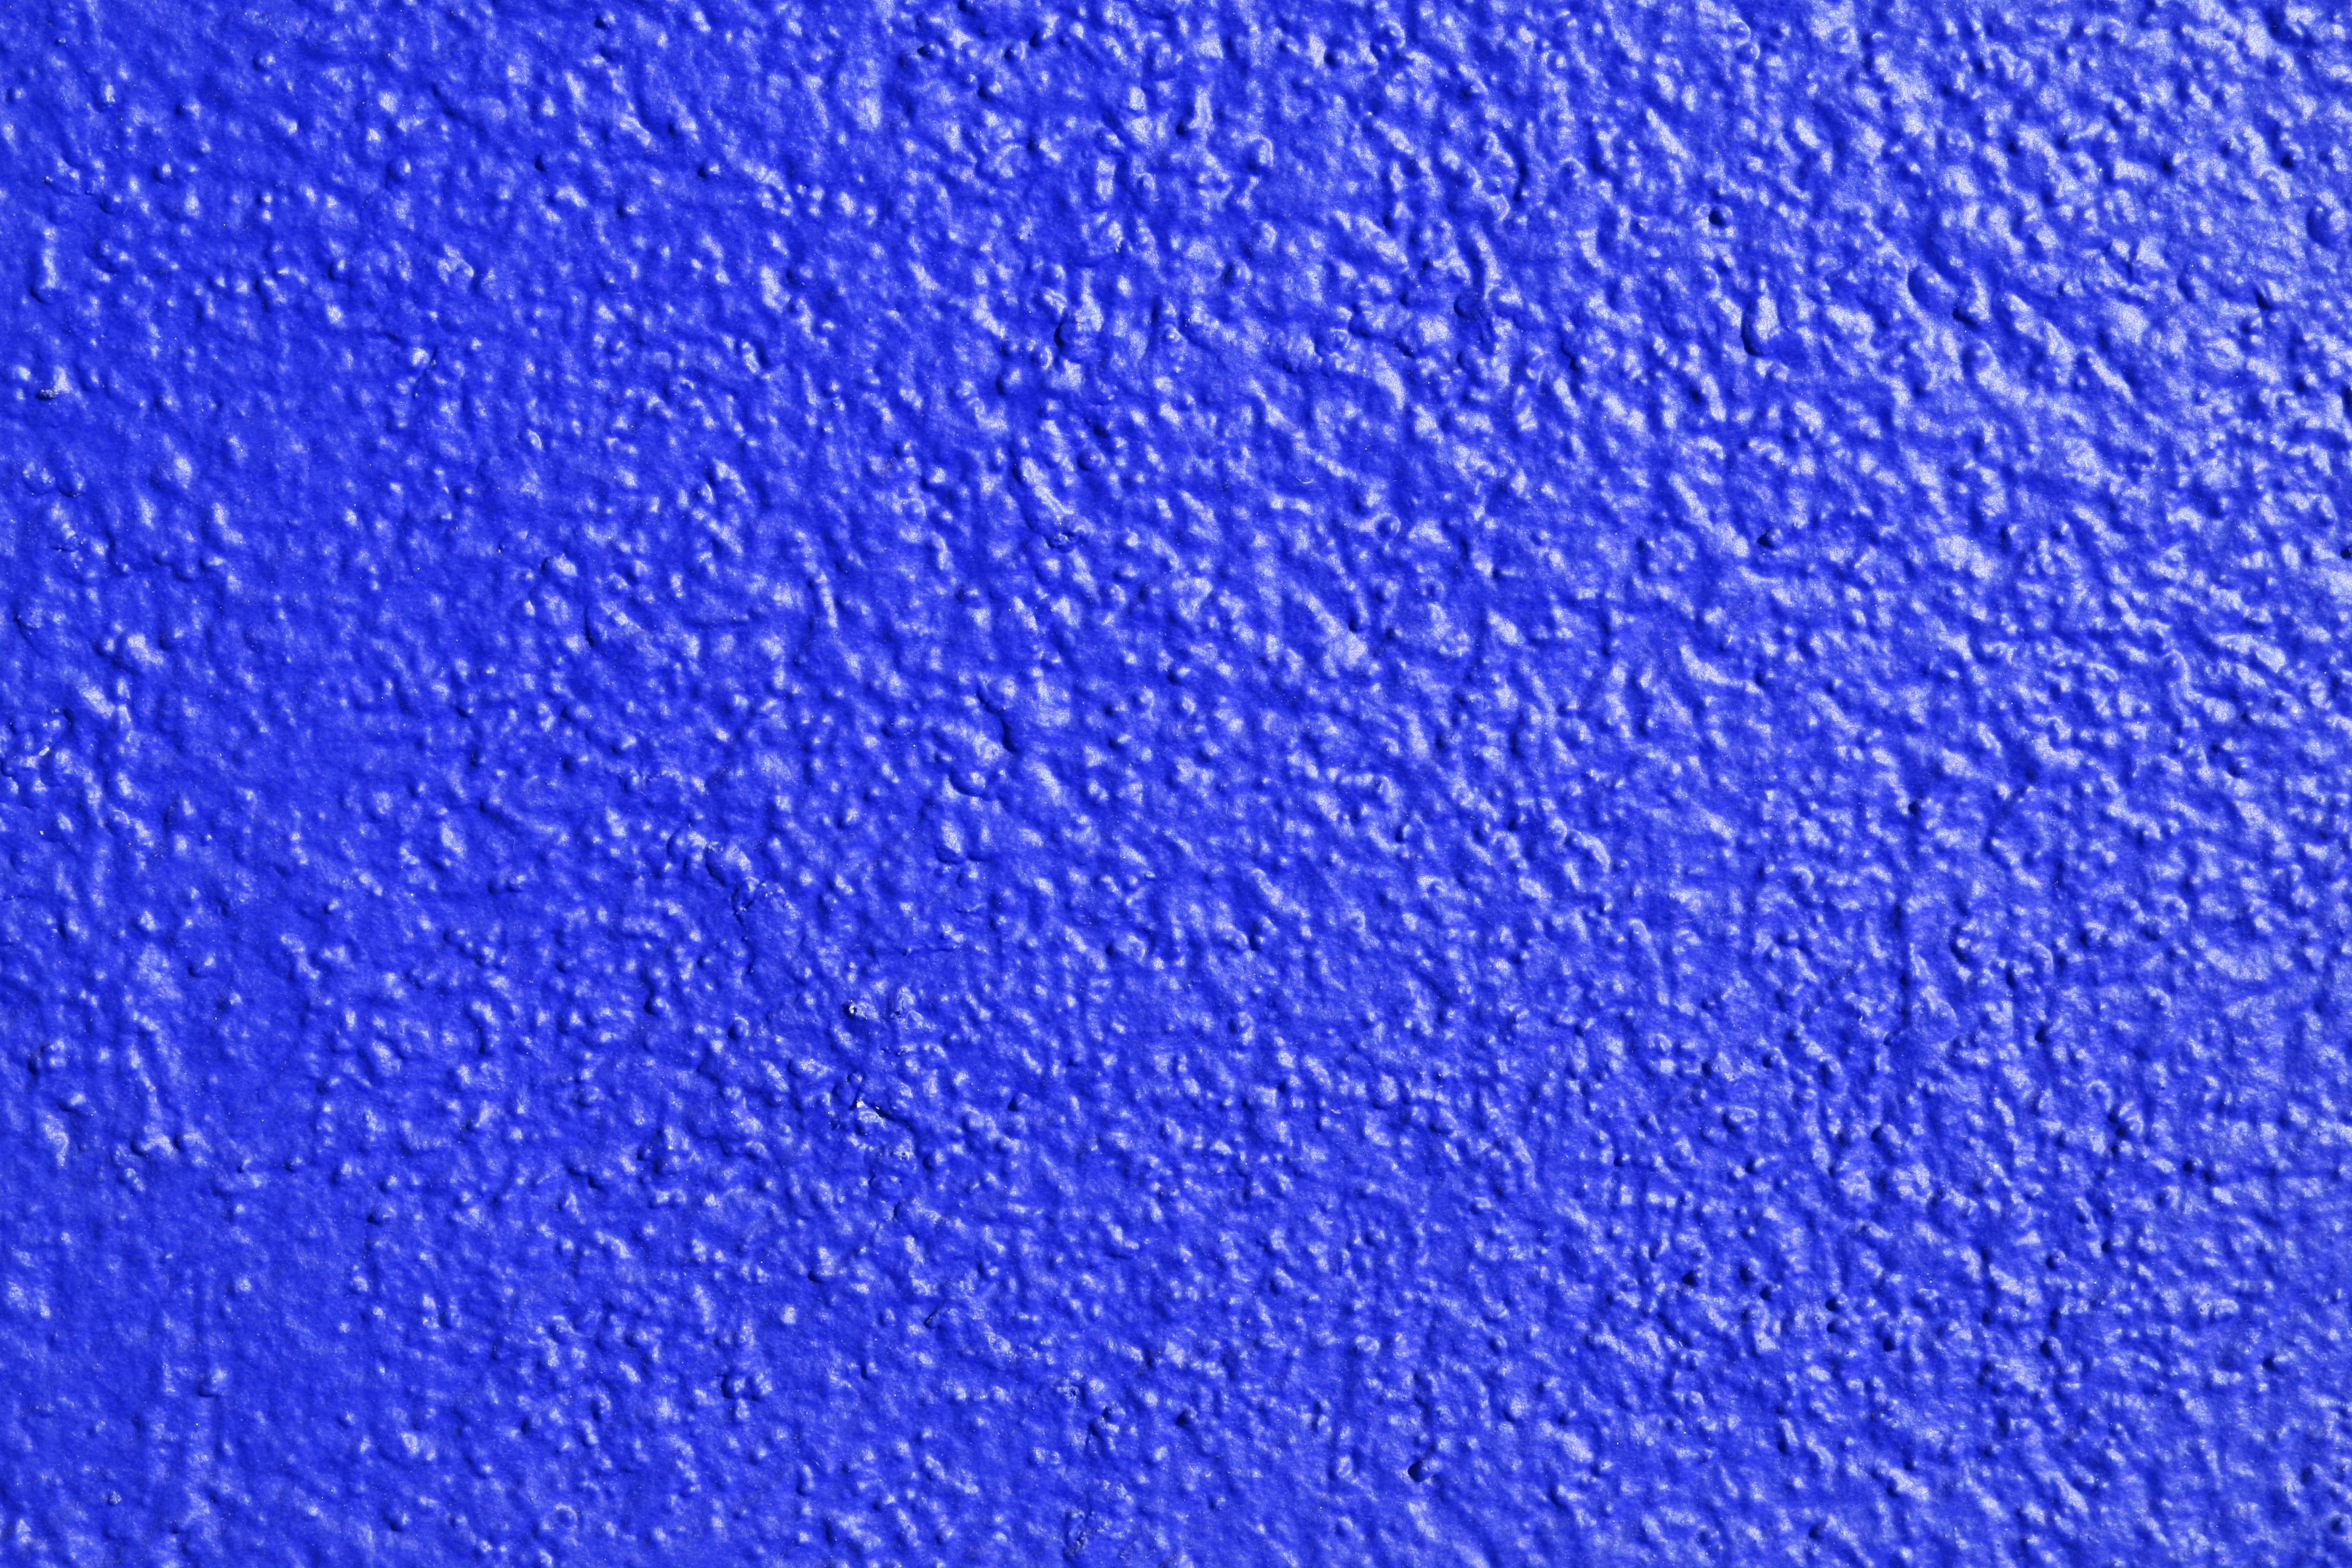 Blue Painted Wall Texture